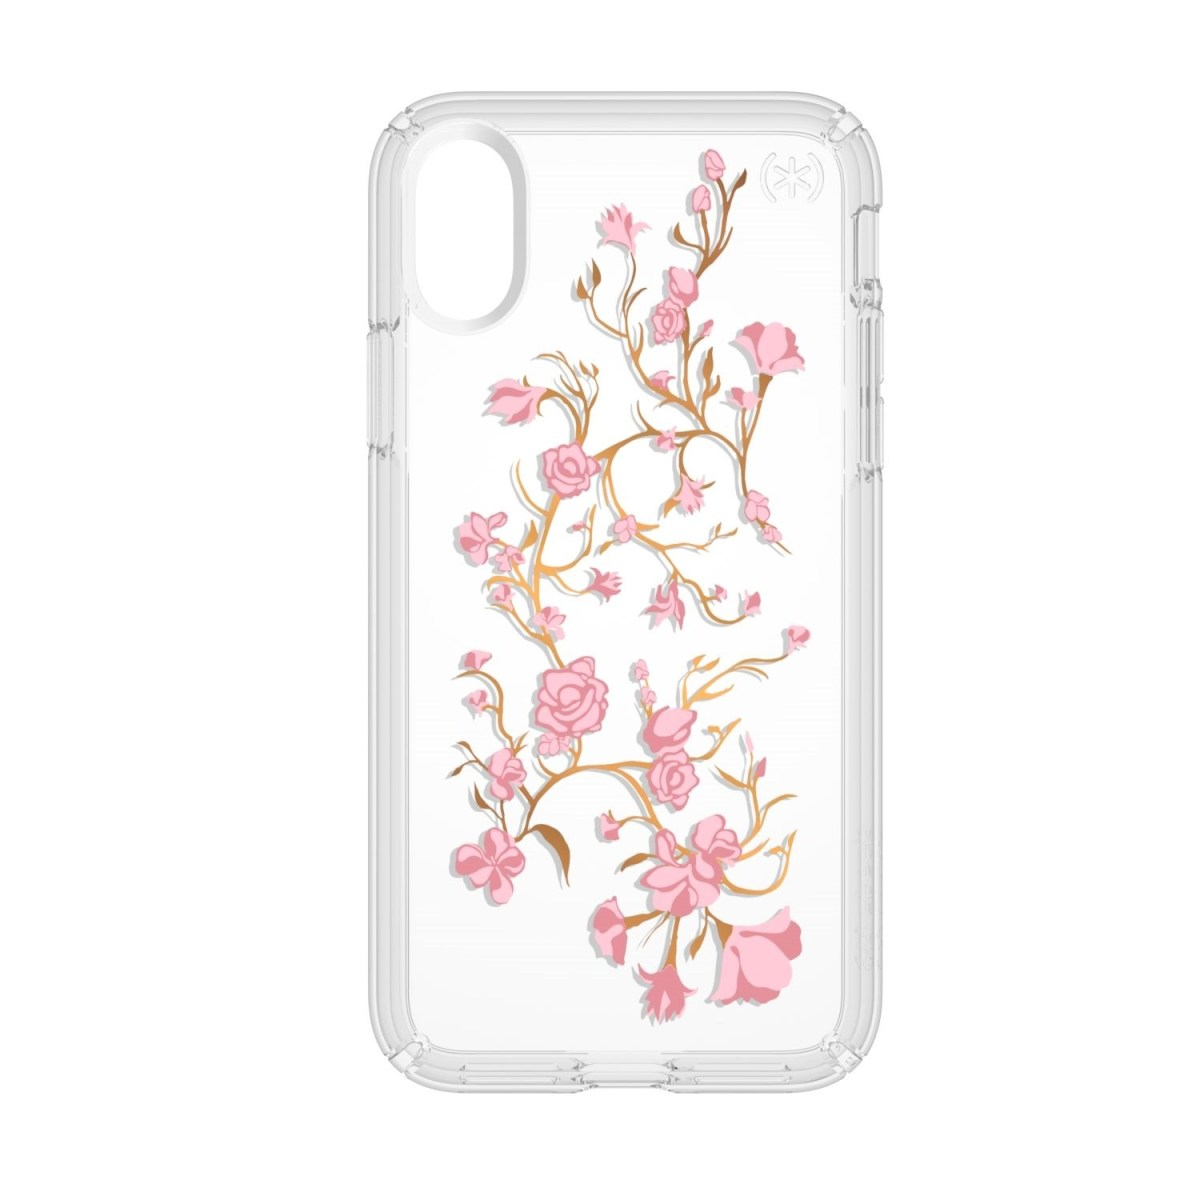 Carcasa iPhone X Presidio Clear + Print - Golden Blossoms Pink/Clear